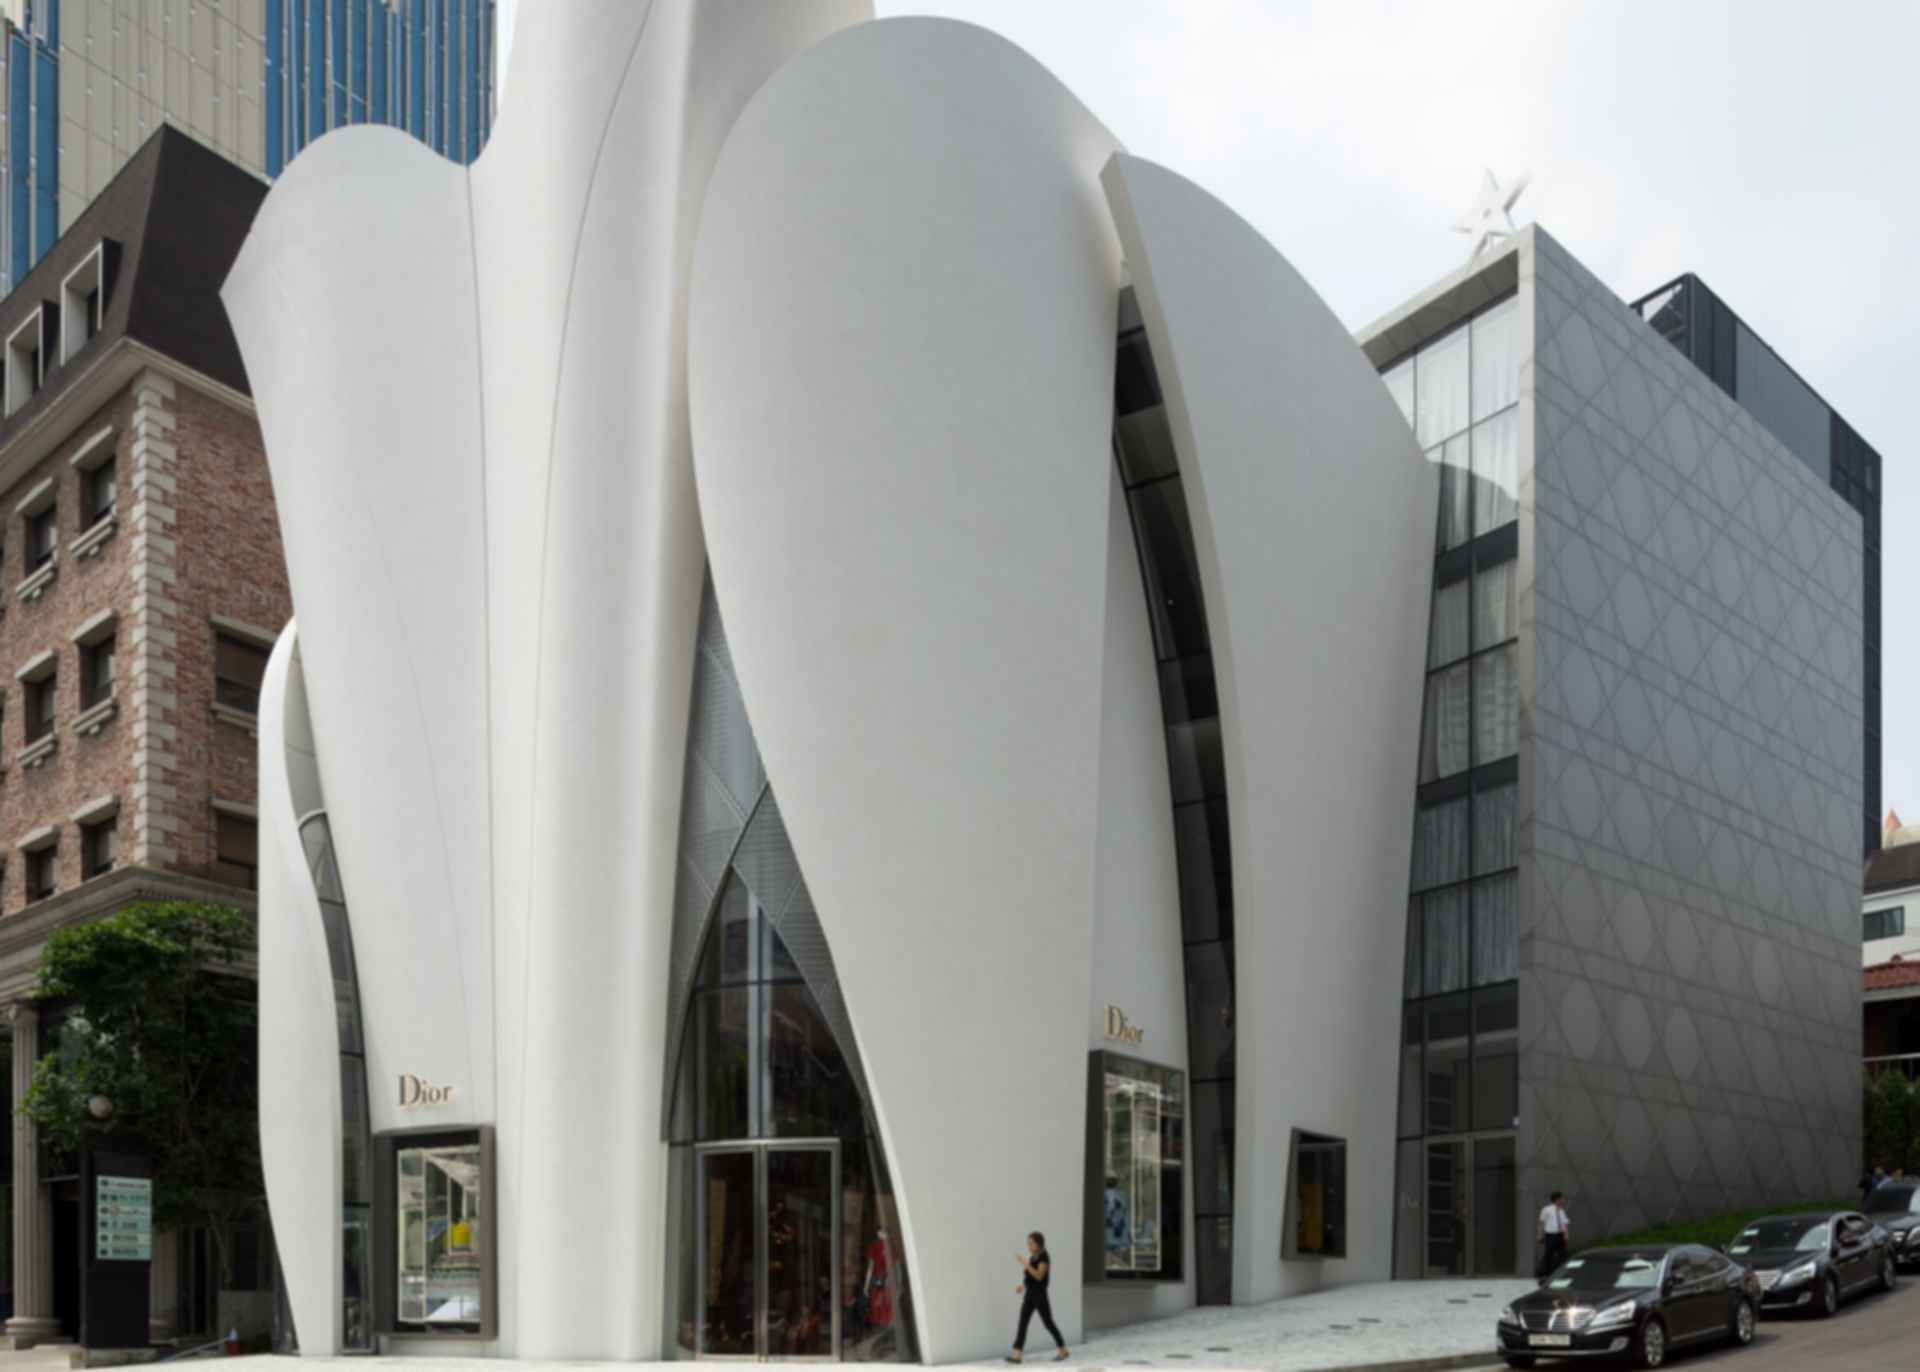 House of Dior - Exterior/Street View